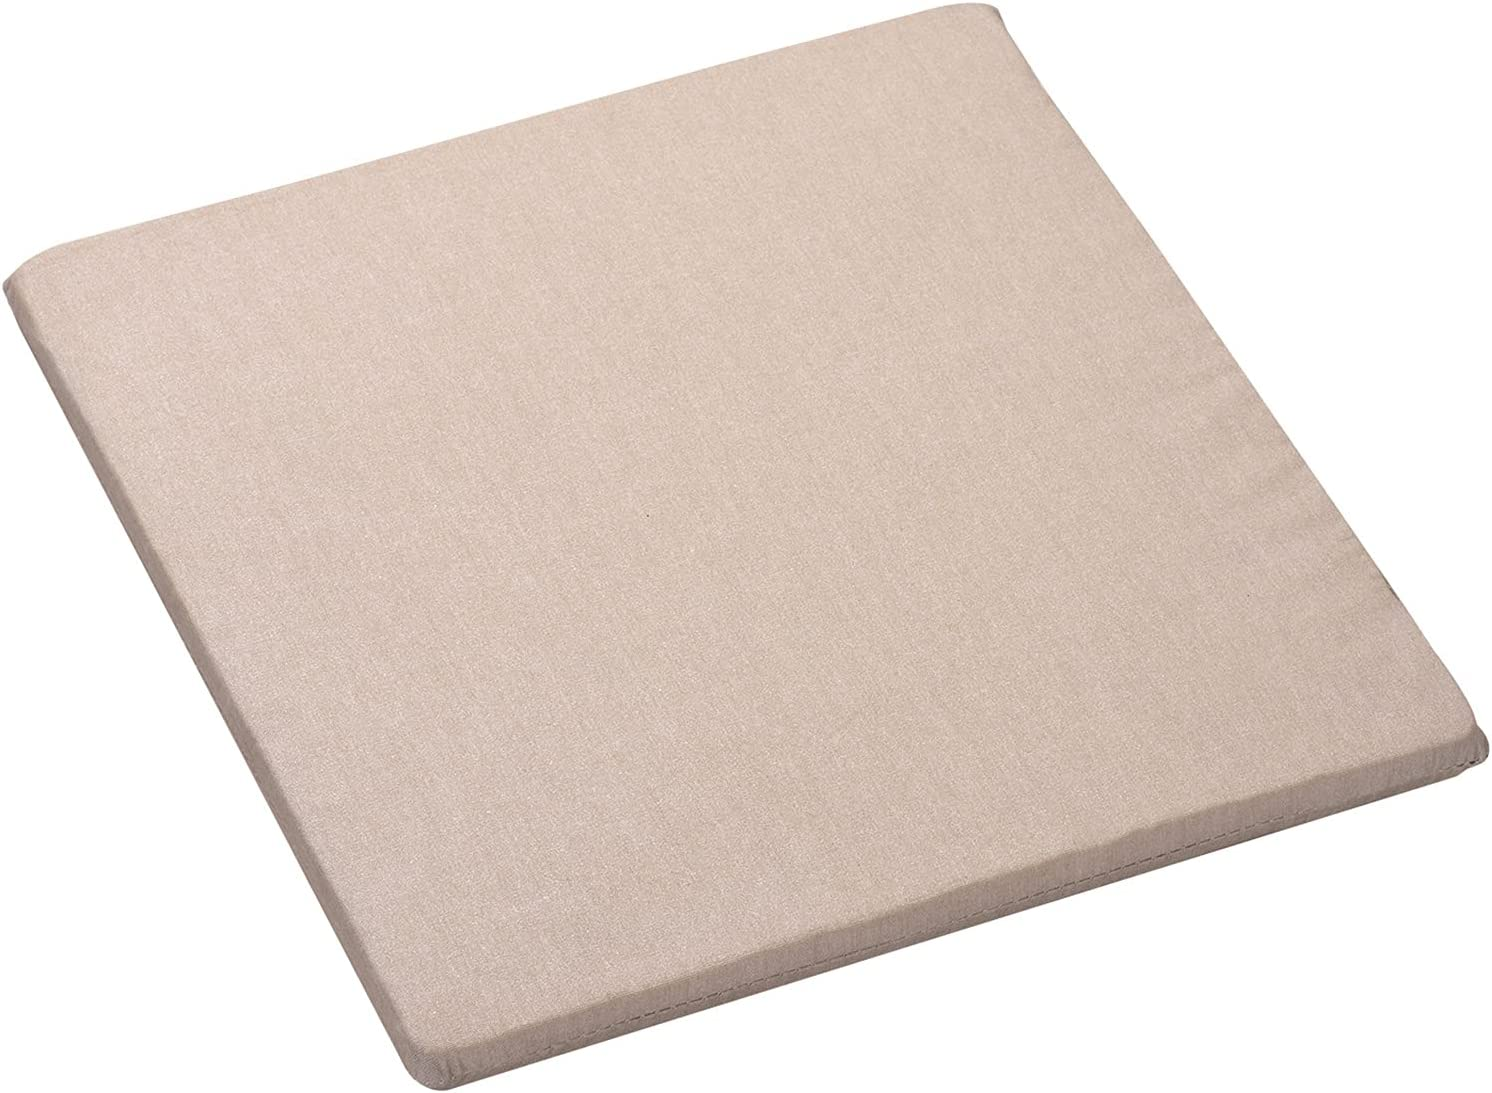 Bobique Excellence Heat Pressing Mat 12 Inch Hi Ironing Pad for T-shirts Max 65% OFF